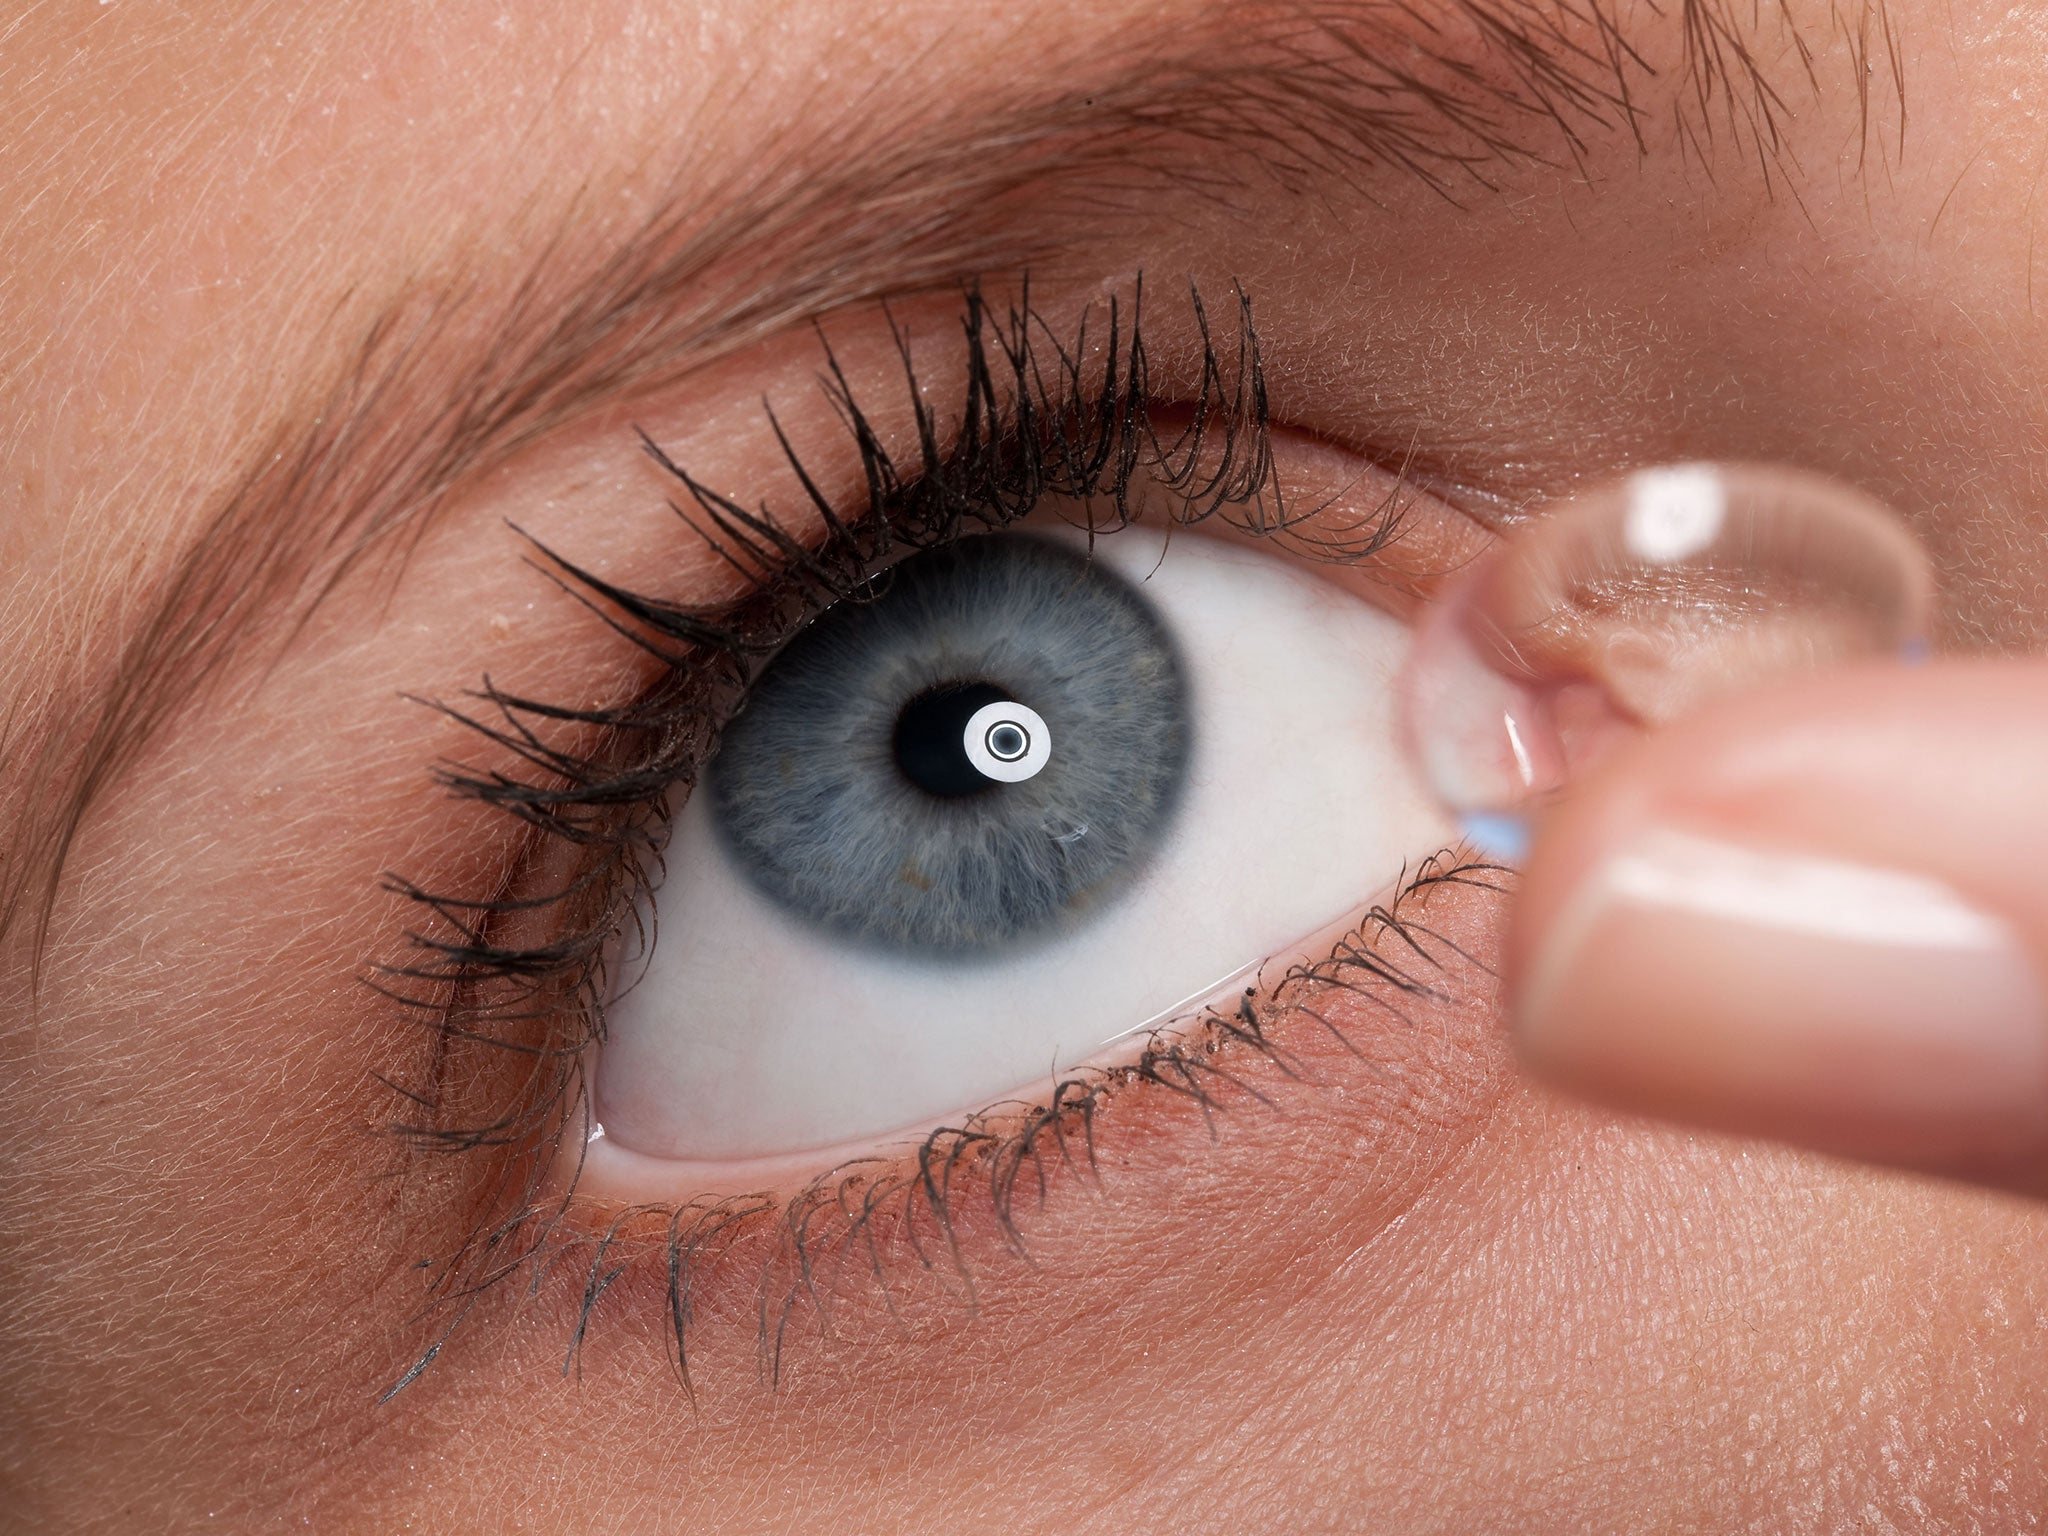 Contact Lenses May Disrupt Eyes Natural Bacteria, Study Suggests